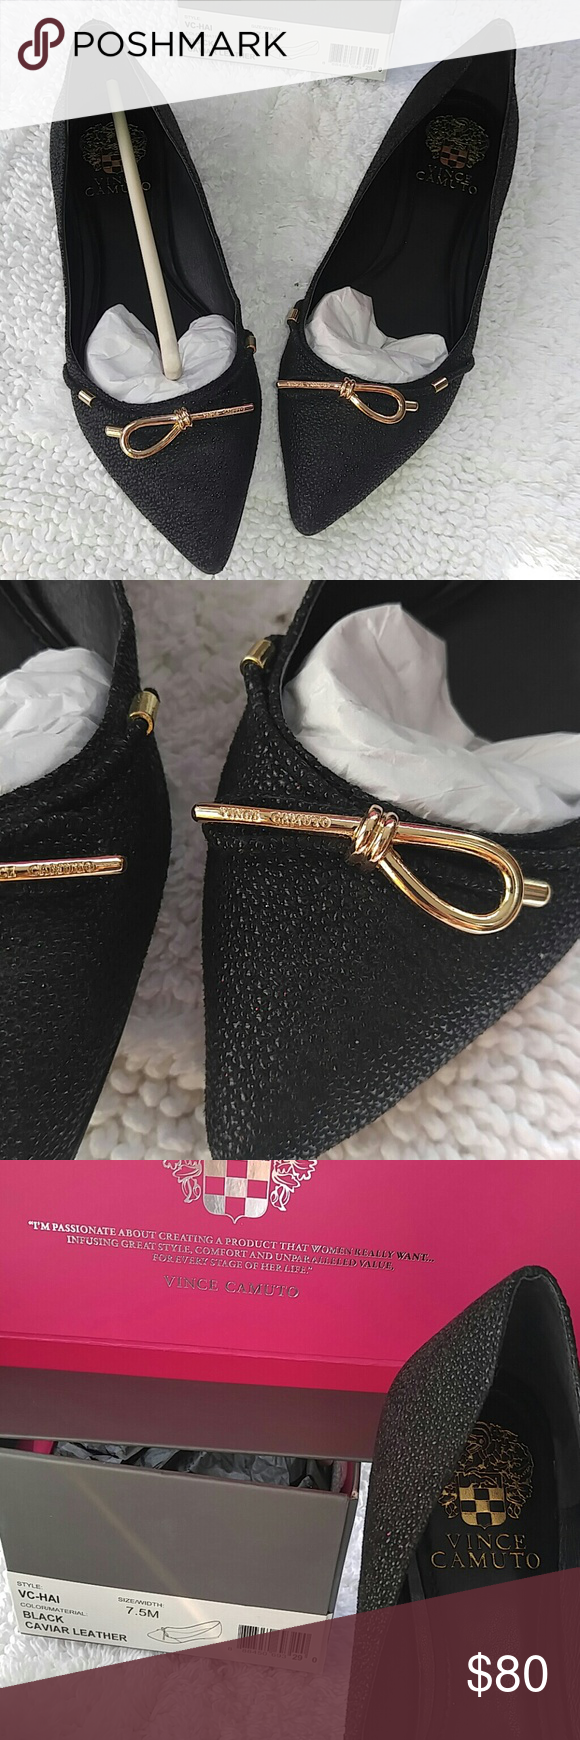 Vince Camuto Blk Caviar Leather Stunning! Size 7.5 Absolutely love but I need an 8. Worn once for family Easter dinner.  Been sitting in box. Gorgeous details! You will get so many compliments! Great black flat to dress up or down! Vince Camuto Shoes Flats & Loafers